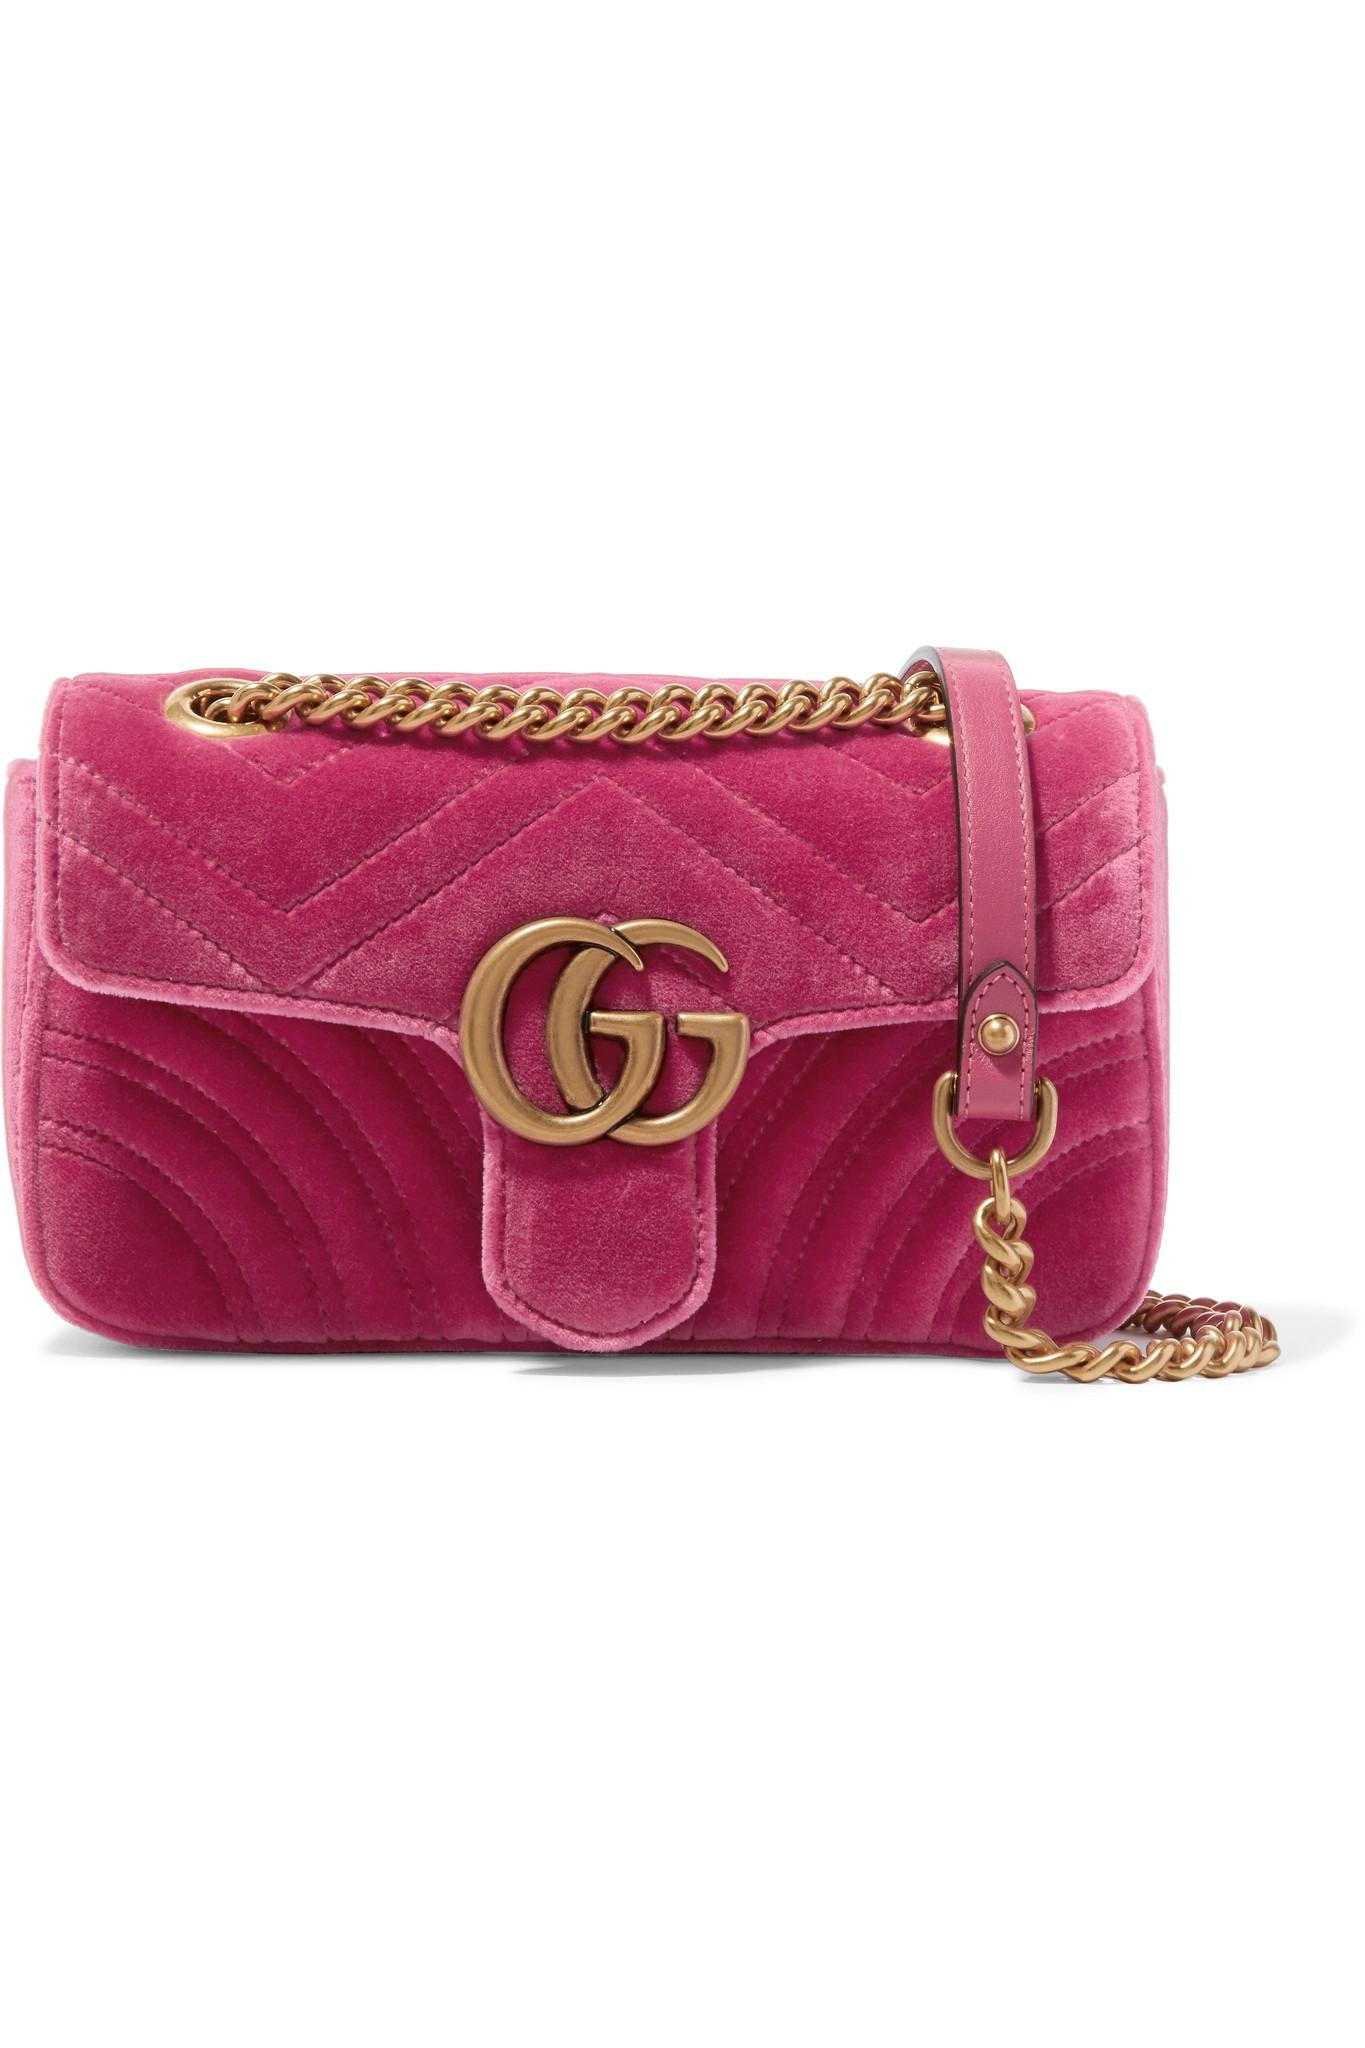 c6049e2b52c09 Gucci Gg Marmont Mini Quilted Velvet Shoulder Bag in Pink - Lyst